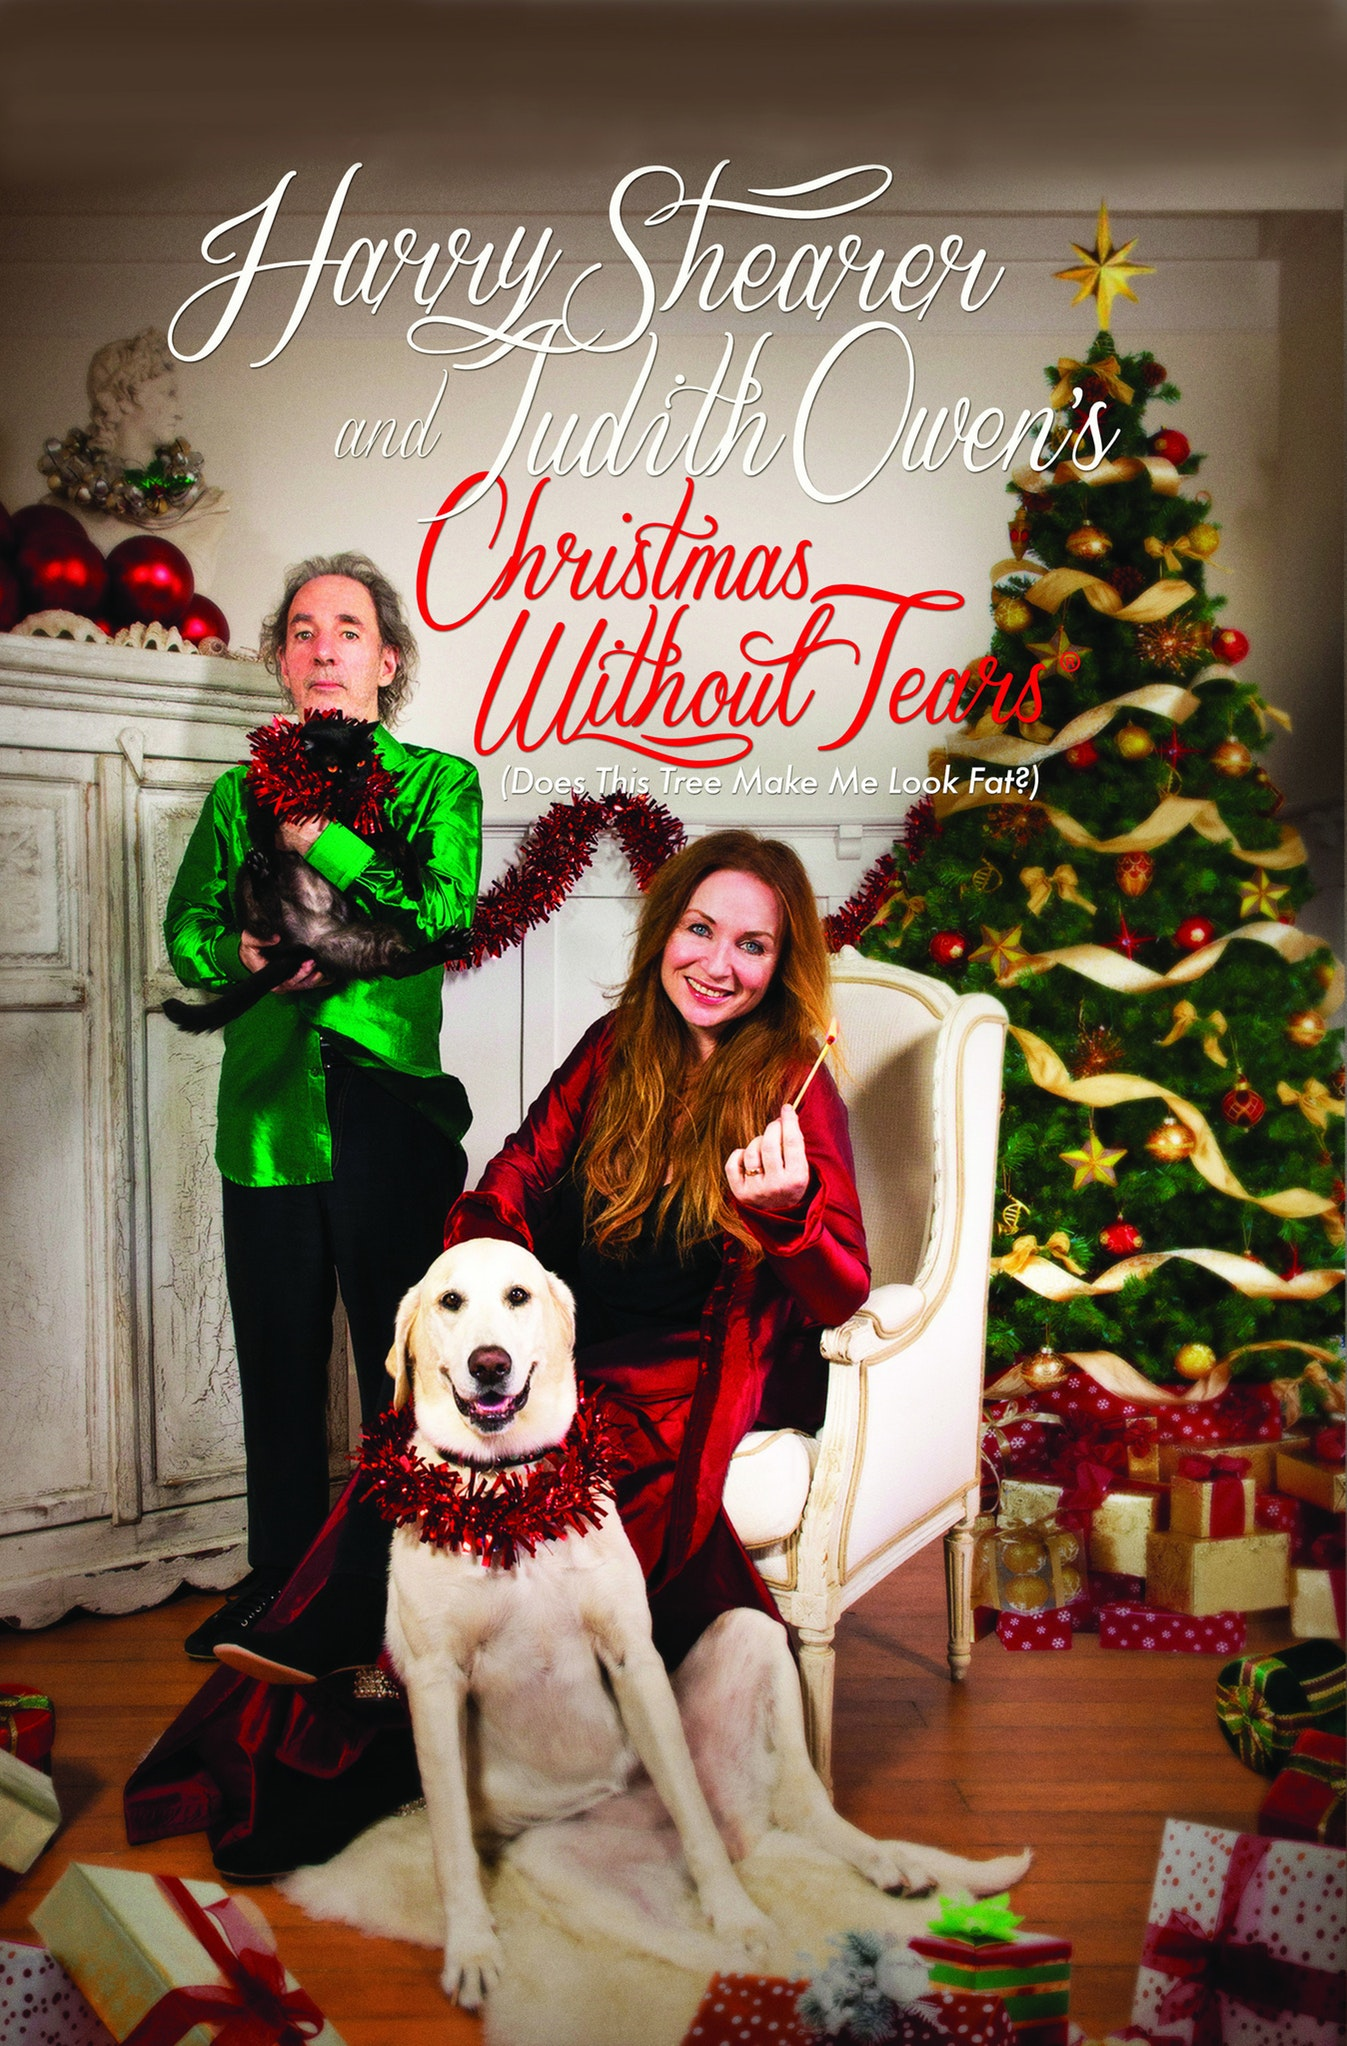 Christmas Without Tears Concert